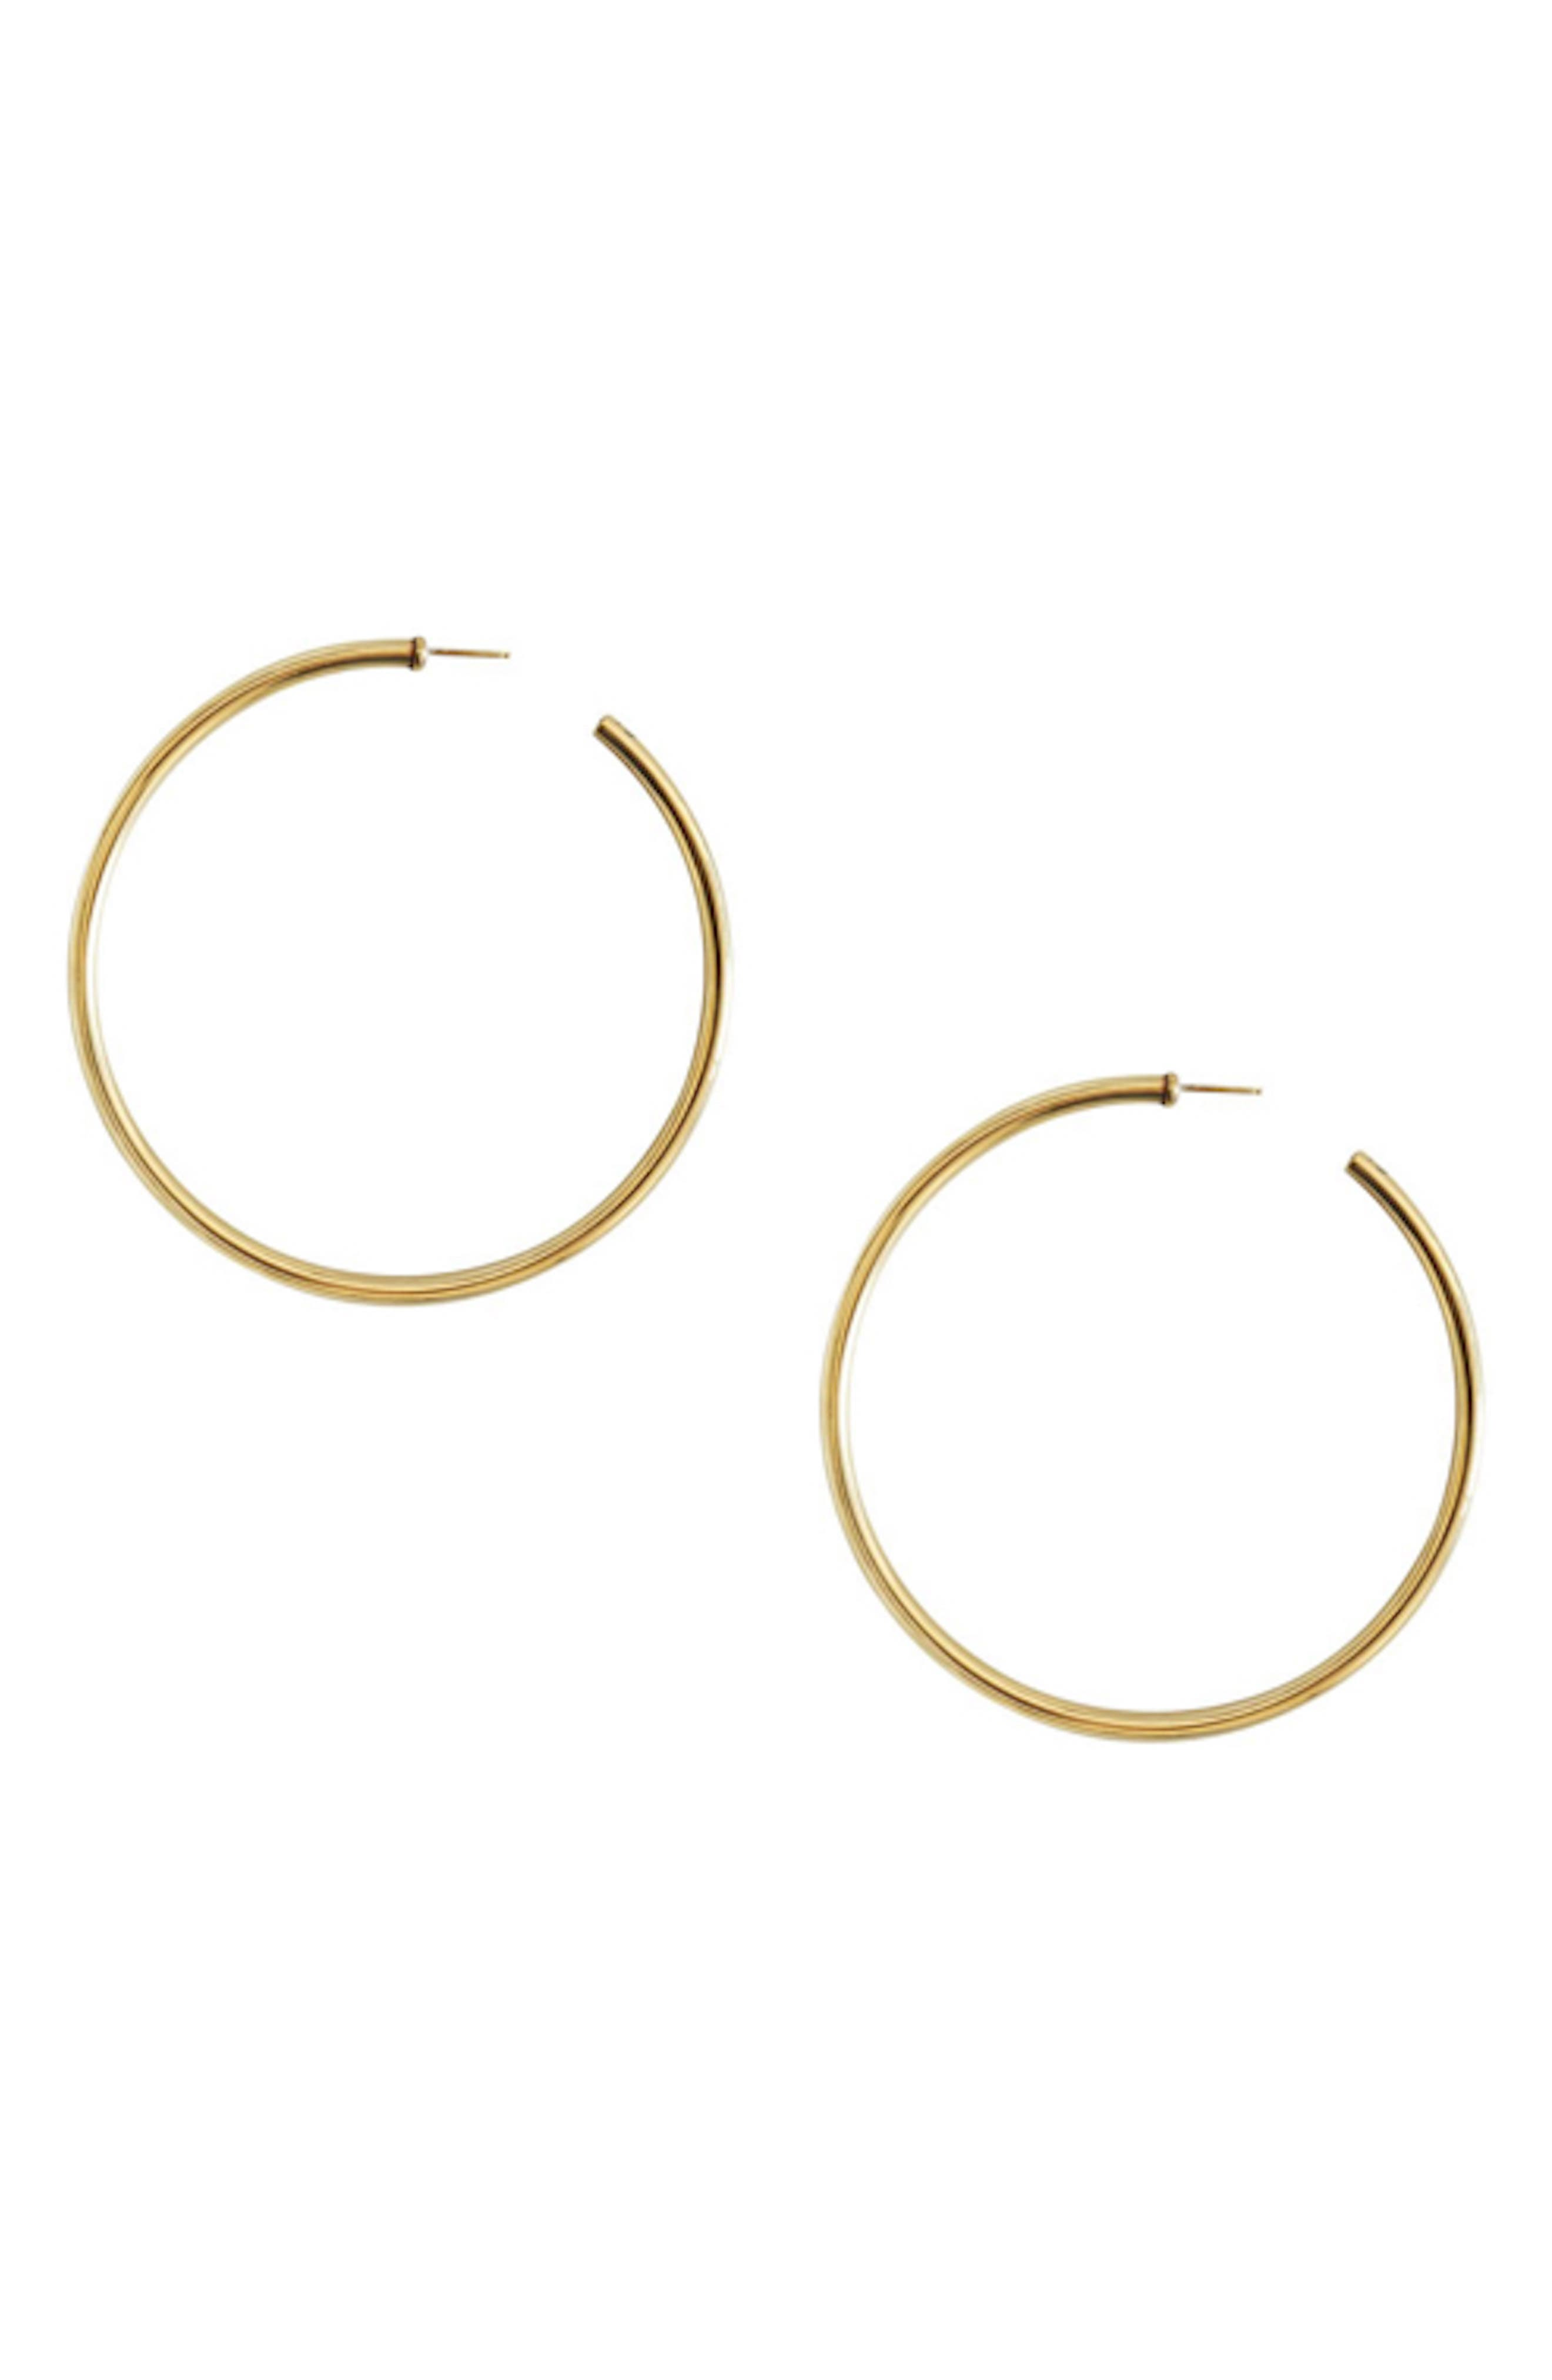 Extra-Large Classic Hoop Earrings,                             Main thumbnail 1, color,                             BRASS